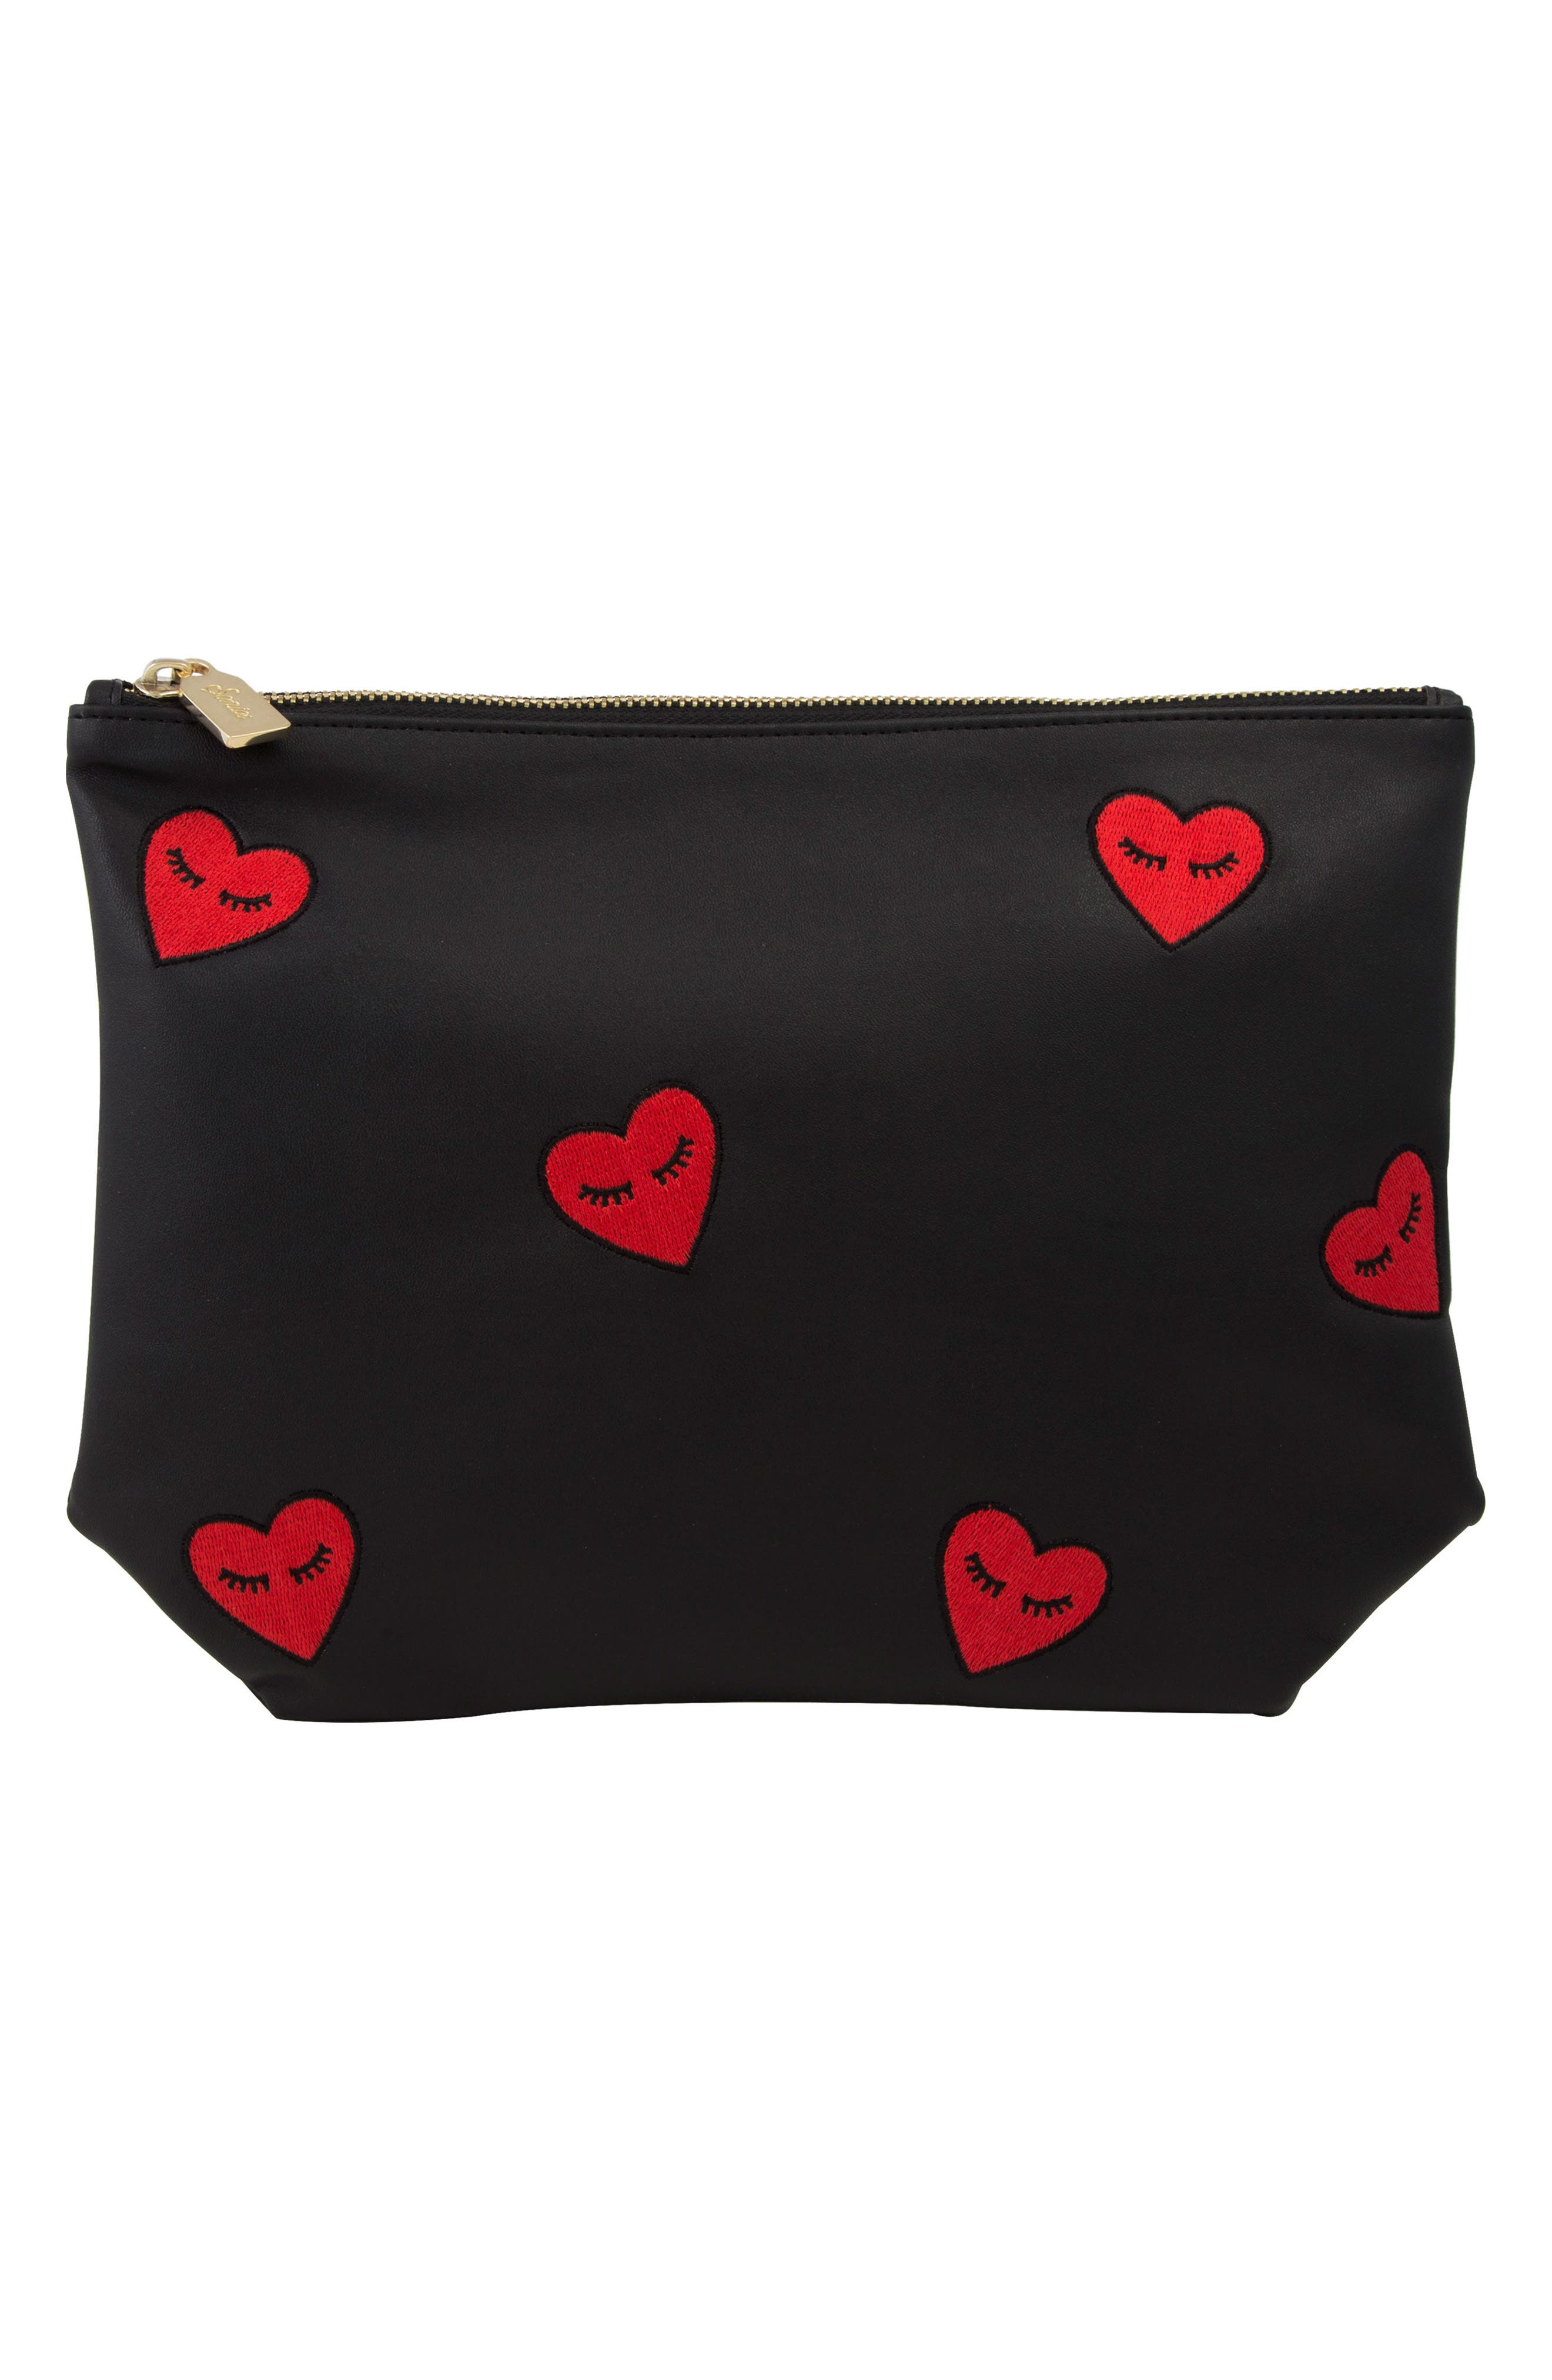 Fancy Hearts Faux Leather Everyday Pouch,                             Main thumbnail 1, color,                             Black